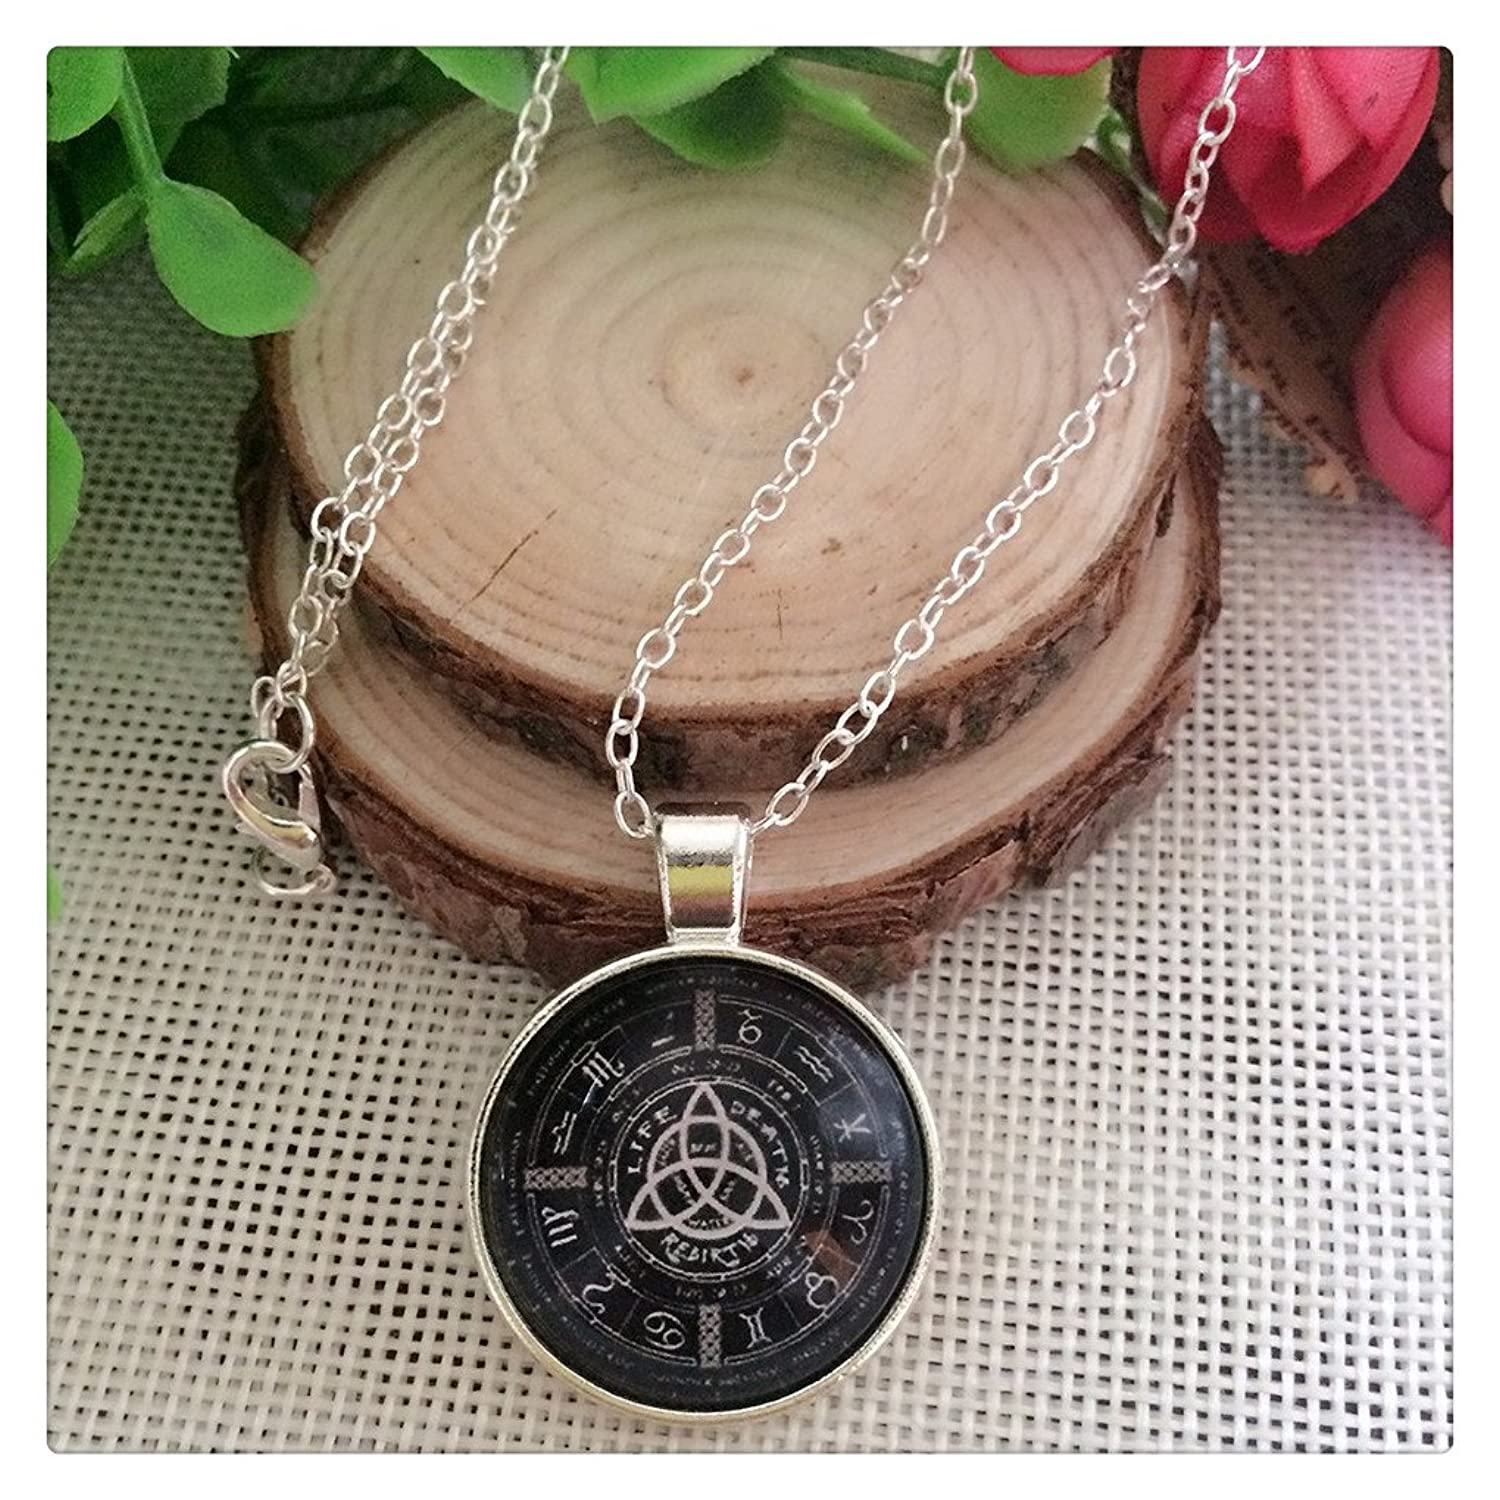 Pagan Wheel of the Year Silver Tone Photo Glass Dome Necklace Pendant Gift glass necklace charms pendant